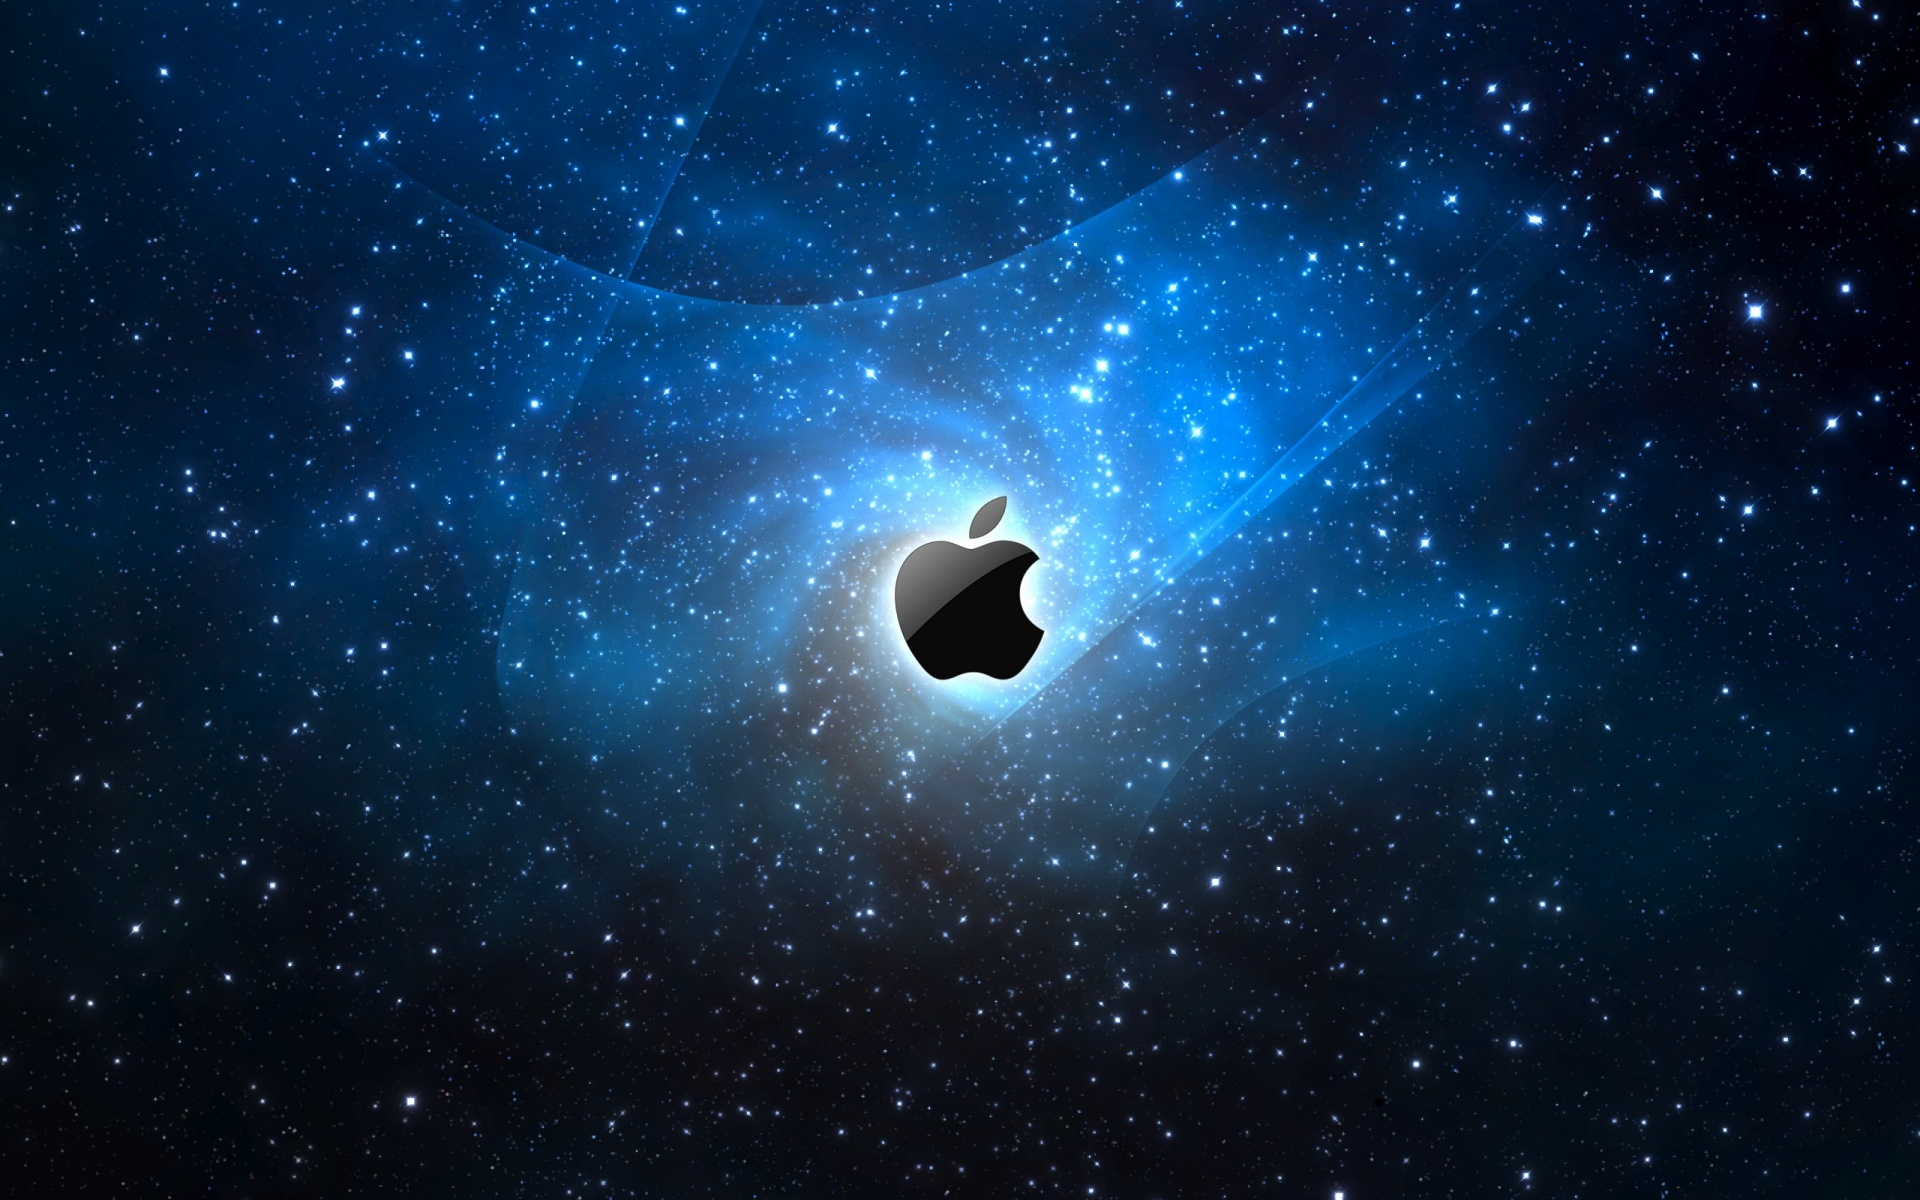 Apple Galaxy Download 1920x1200